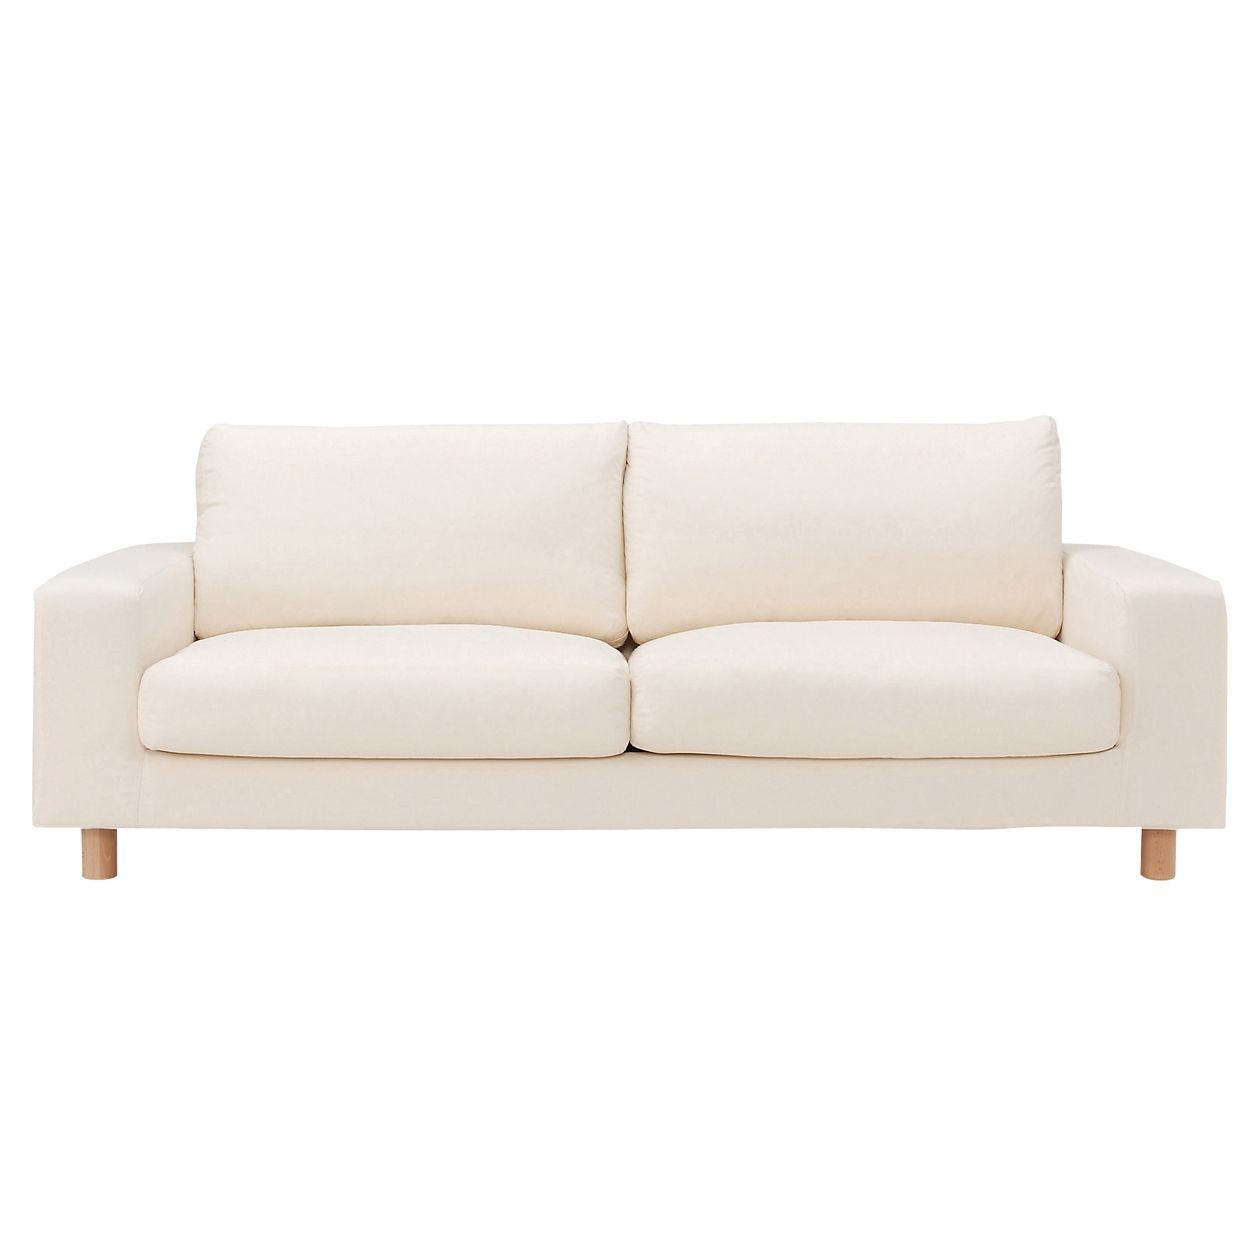 Feather Cushion Sofa Wide Arm 2 5 Seater Cover And Legs Sold